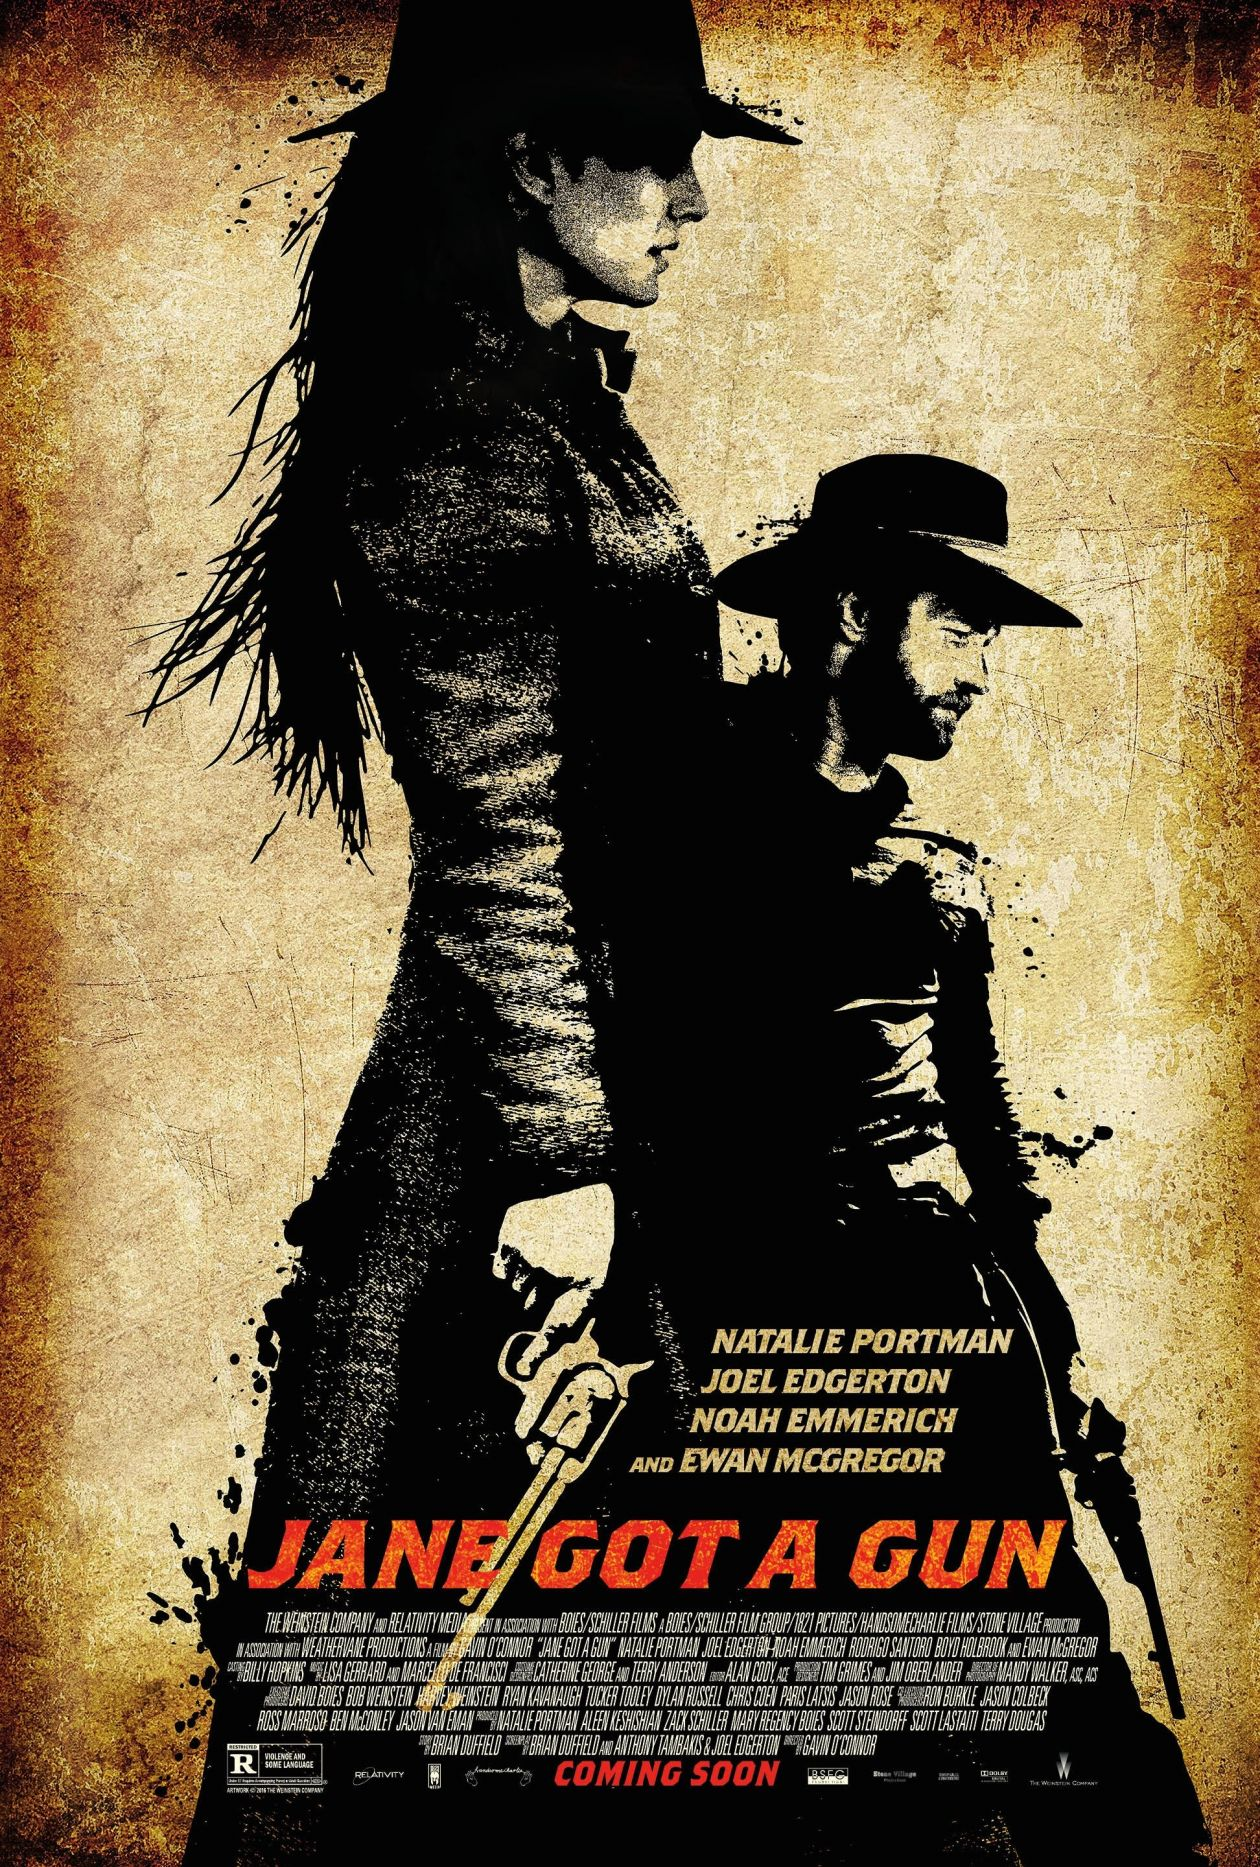 Natalie Portman | Jane got a gun | Gavin O'Connor 2015 Movie Poster